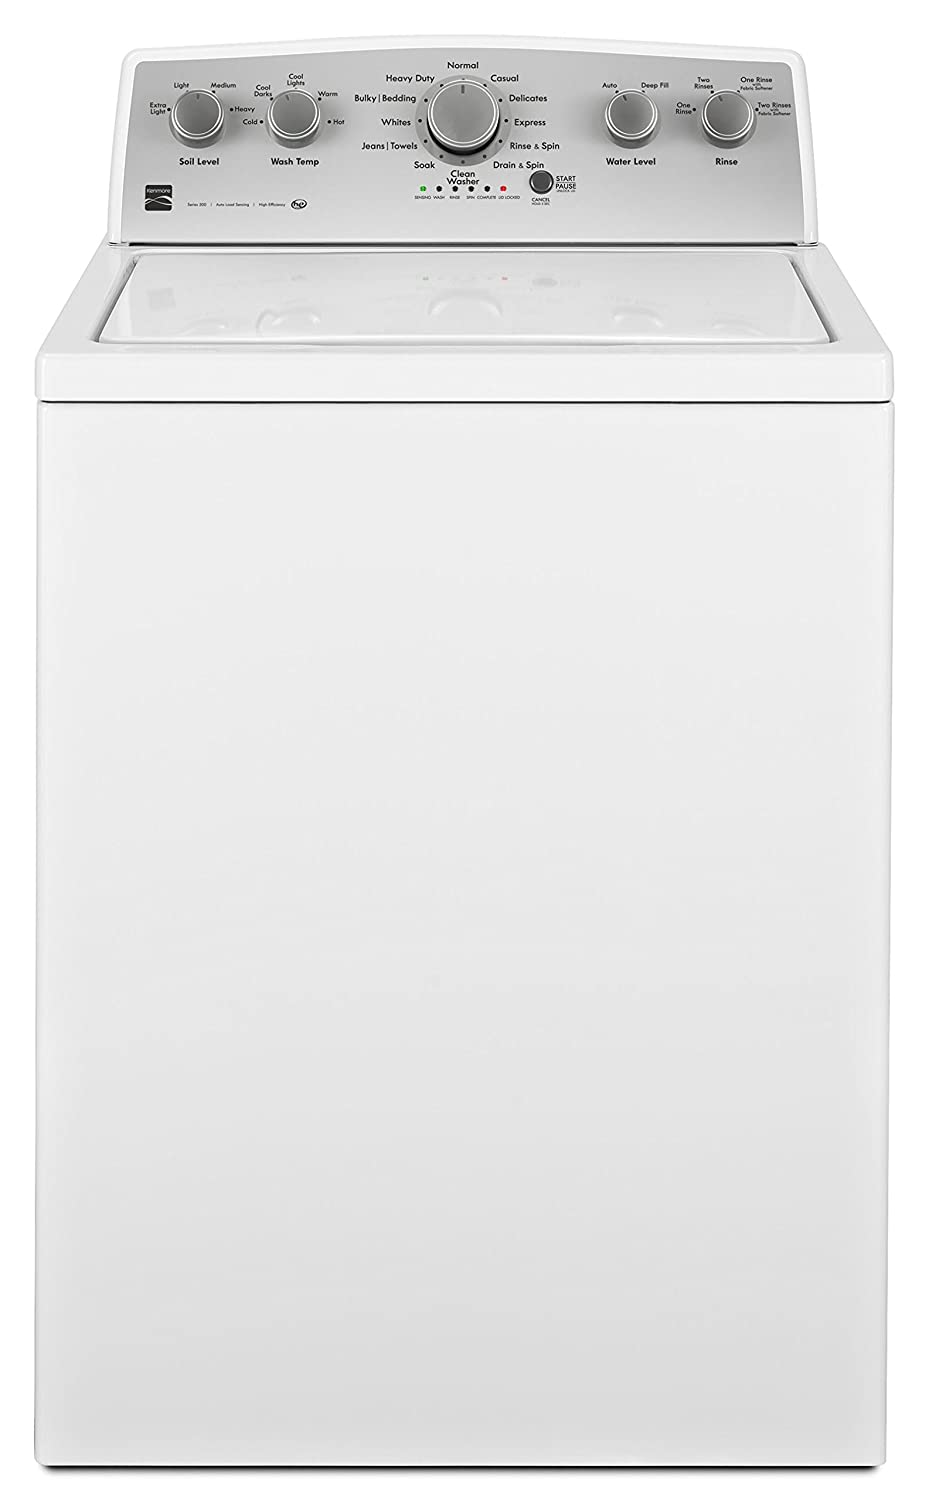 Kenmore 22352 Washing Machine Black Friday Deal 2020